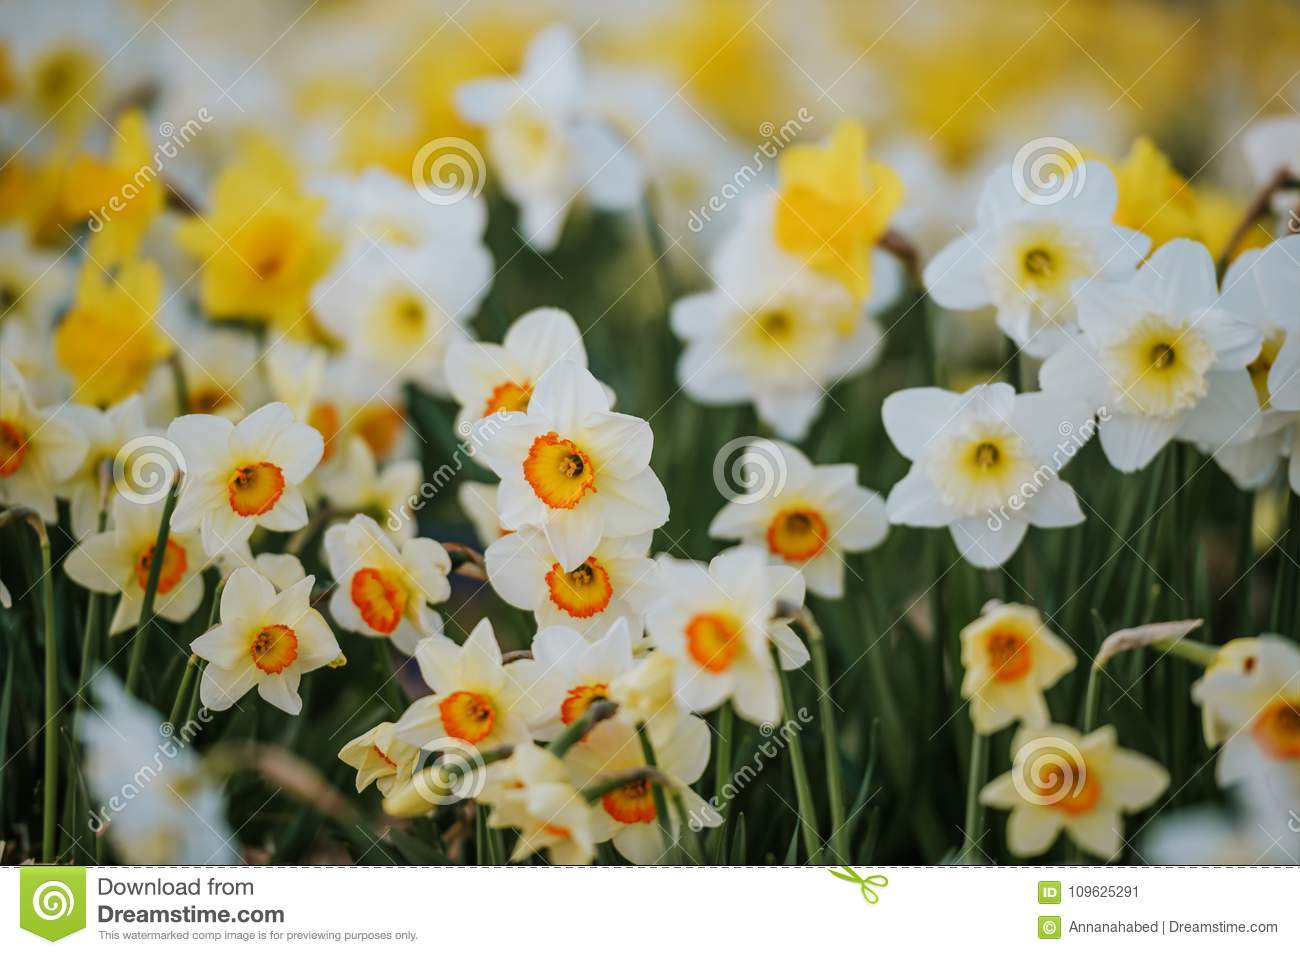 Different kind of white and yellow daffodil flowers stock image download different kind of white and yellow daffodil flowers stock image image of garden mightylinksfo